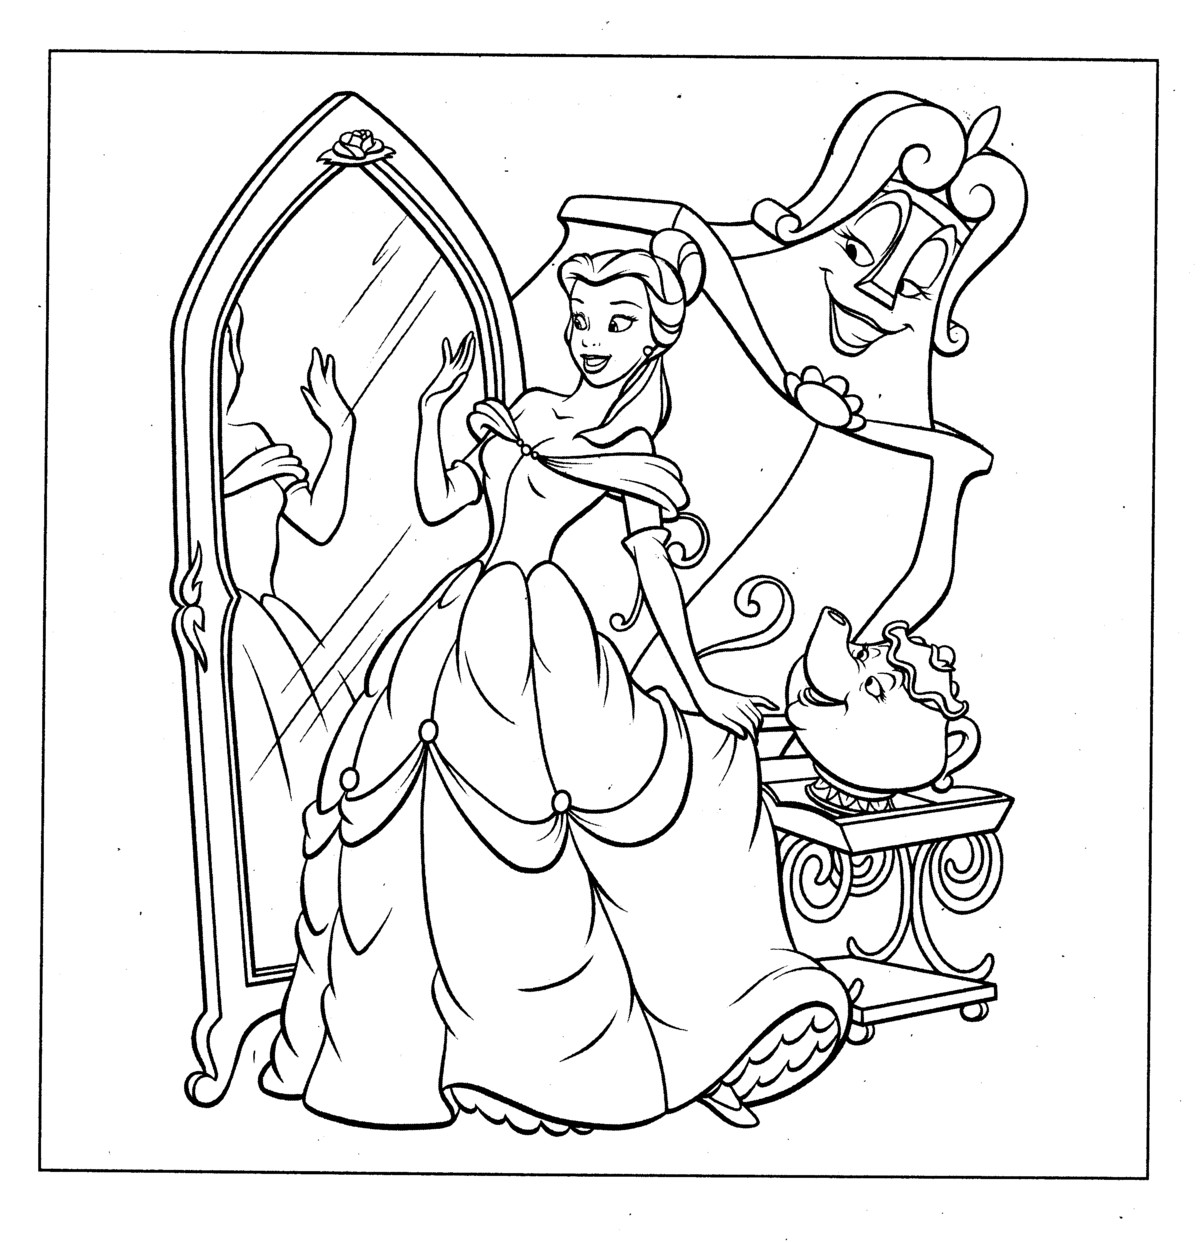 disney princess coloring worksheets disney movie princesses princess coloring pages princess coloring disney worksheets